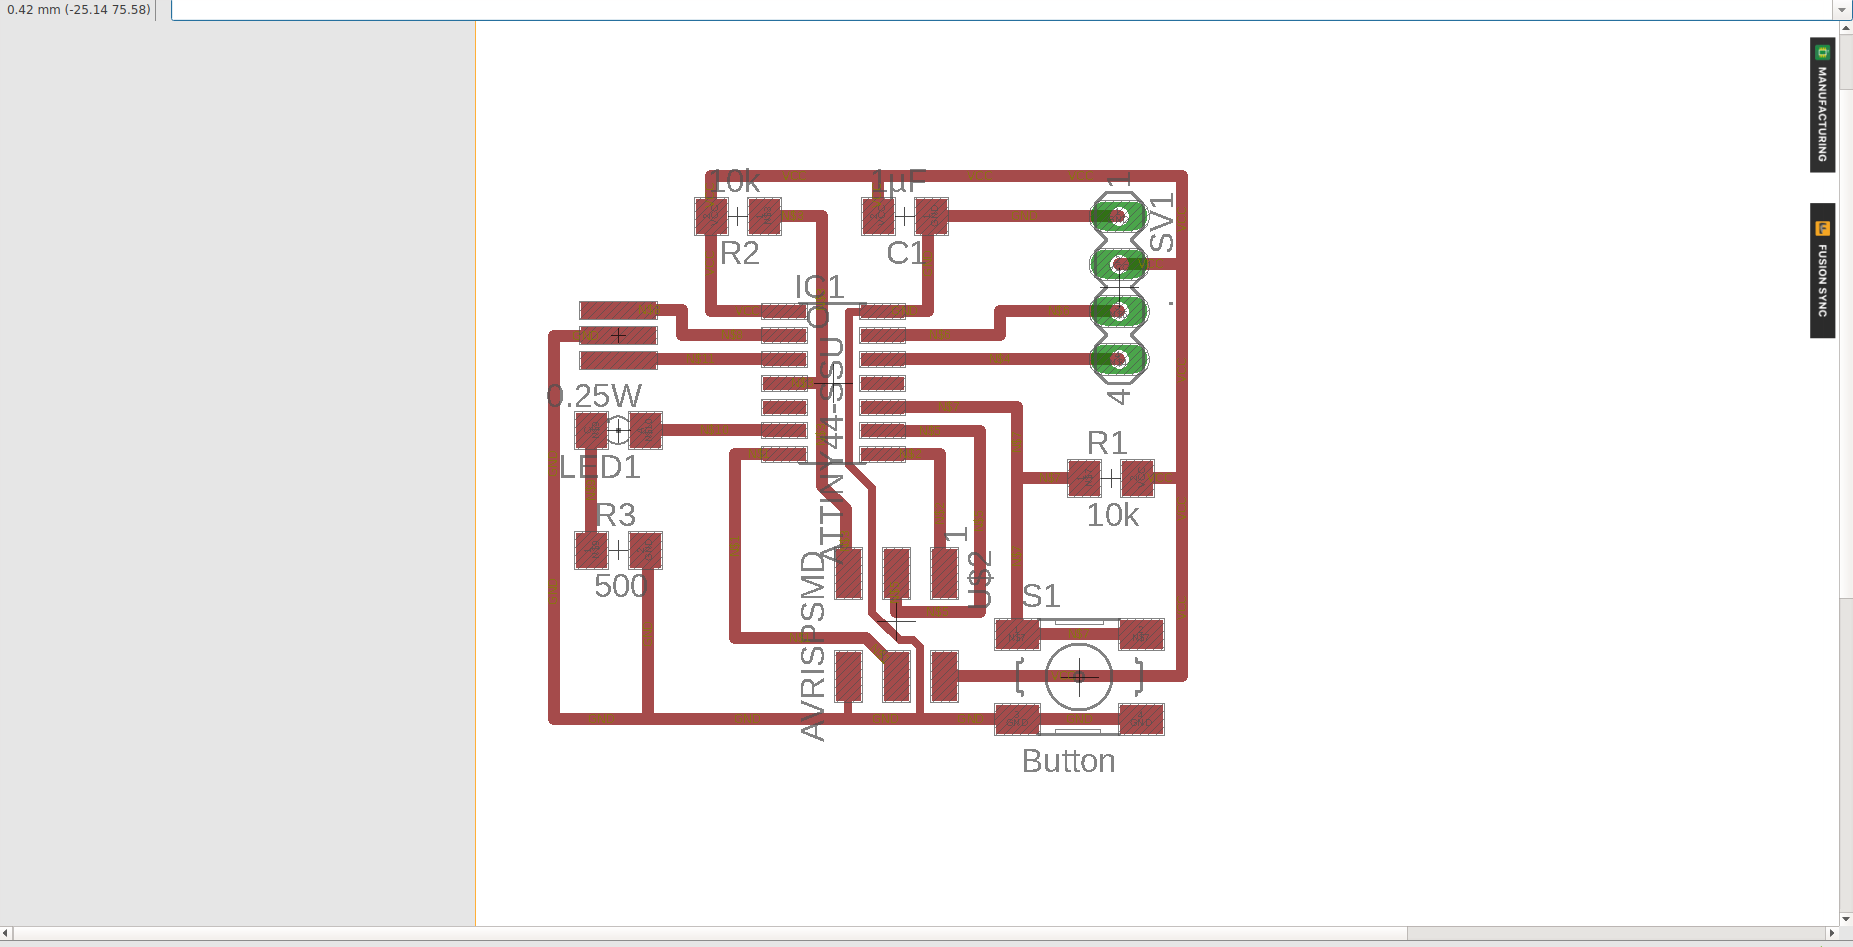 Fab Academy 2018 For Pcb Design Including Schematic Capture Board Layout And Autorouter View Final Version